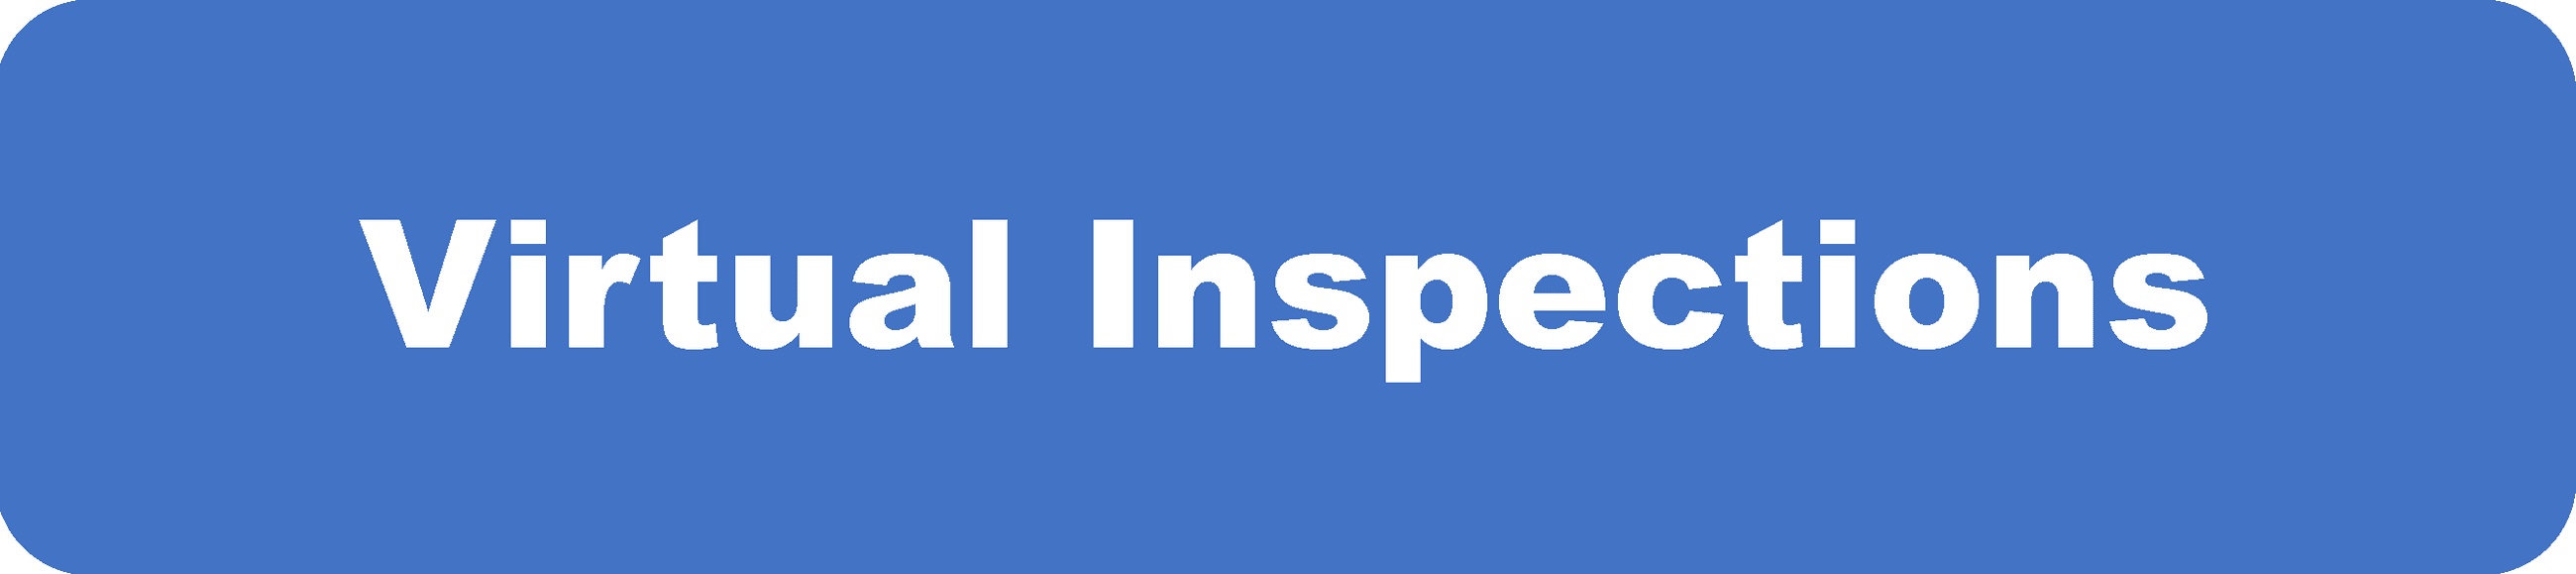 Virtual Inspections Banner